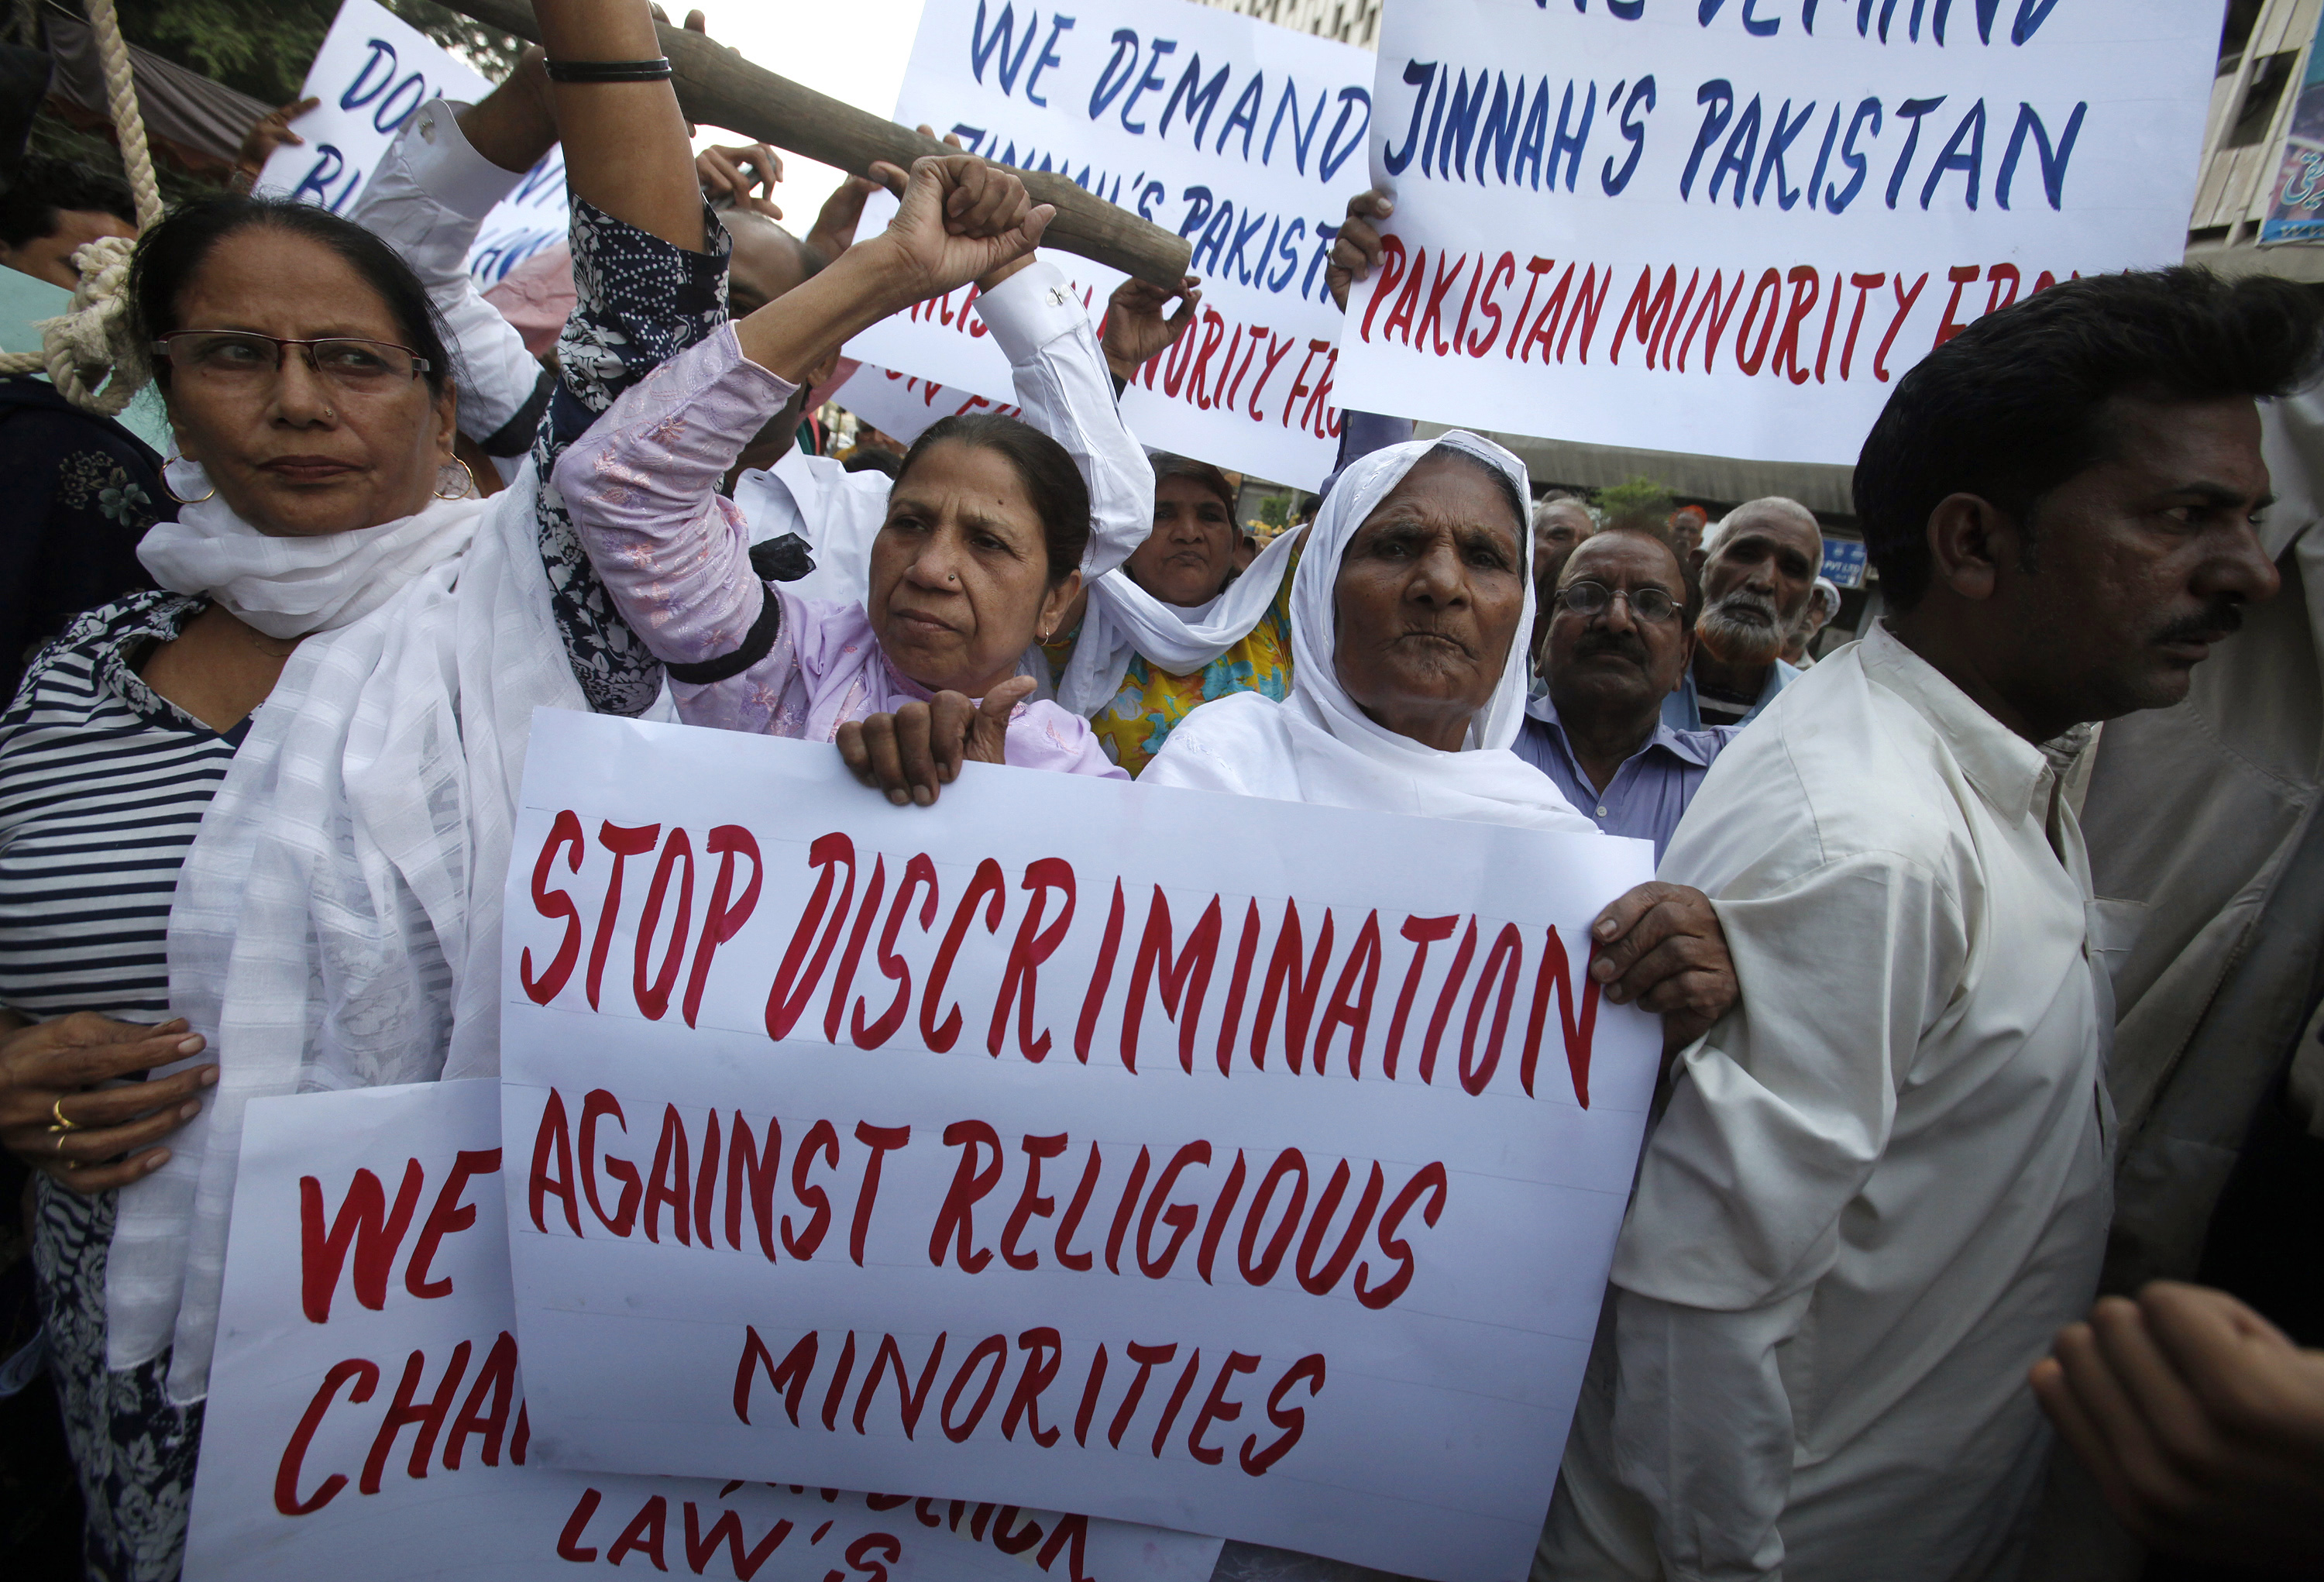 Protesters hold up placards while demanding the release of Asia Bibi, a Pakistani Christian woman sentenced to death for blasphemy, at a rally in Karachi on Nov. 25, 2010